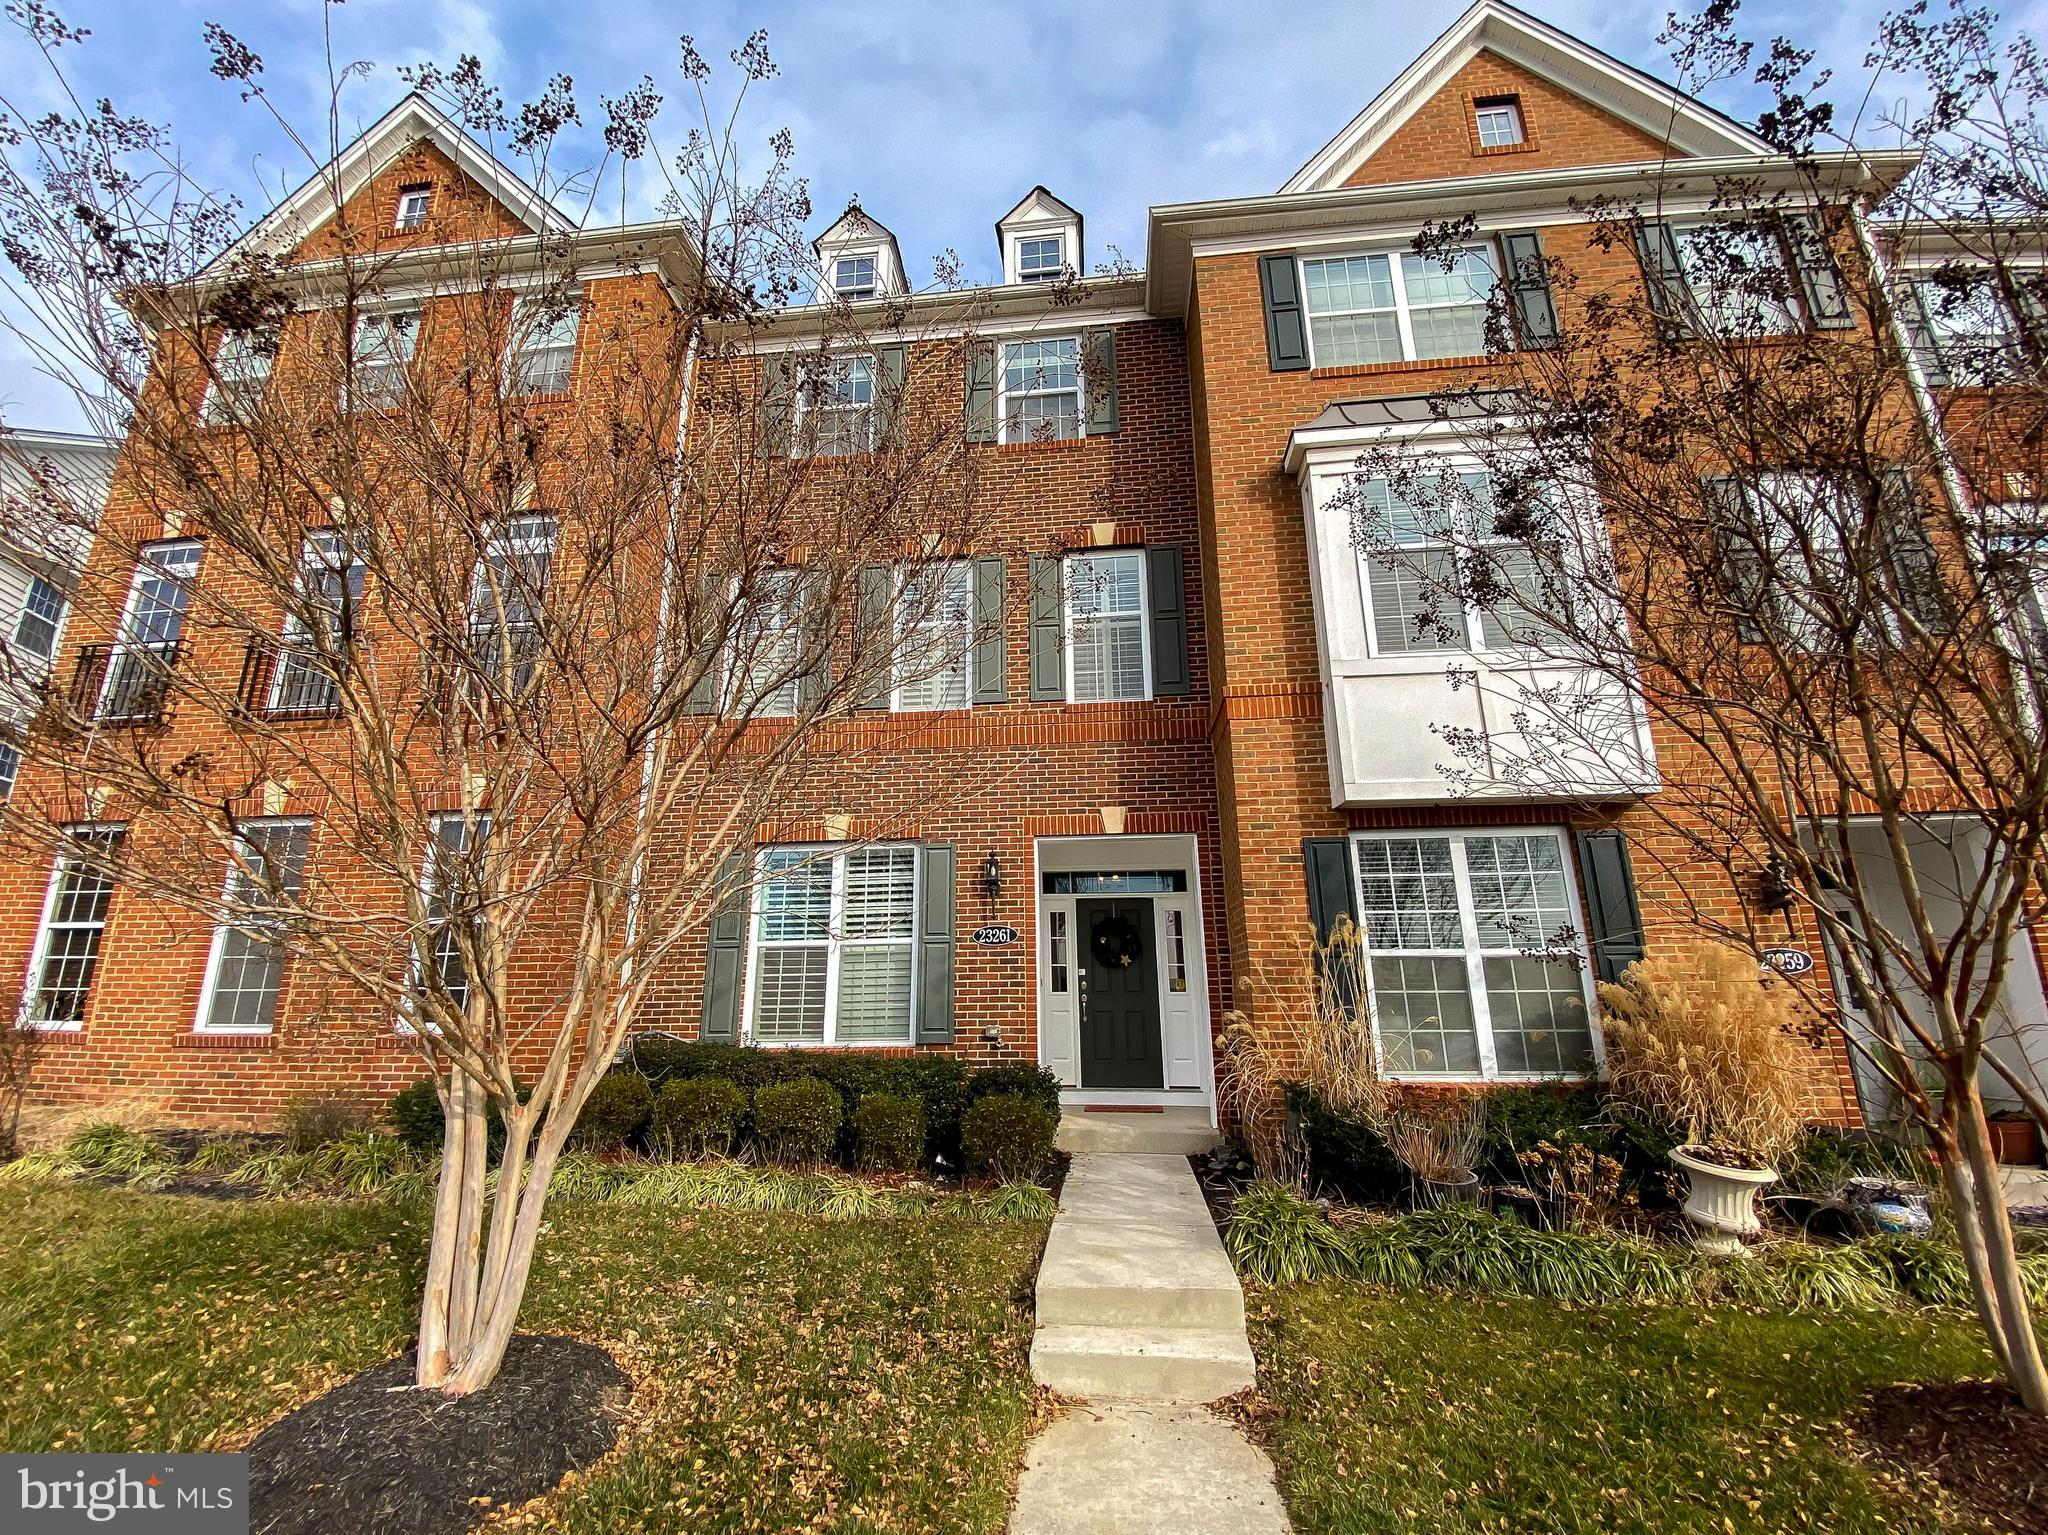 BETTER THAN NEW 3 LEVEL - 4 BEDROOM - 3.5 BATH TOWN HOME IN SOUGHT AFTER LOUDOUN VALLEY ESTATES!  TH